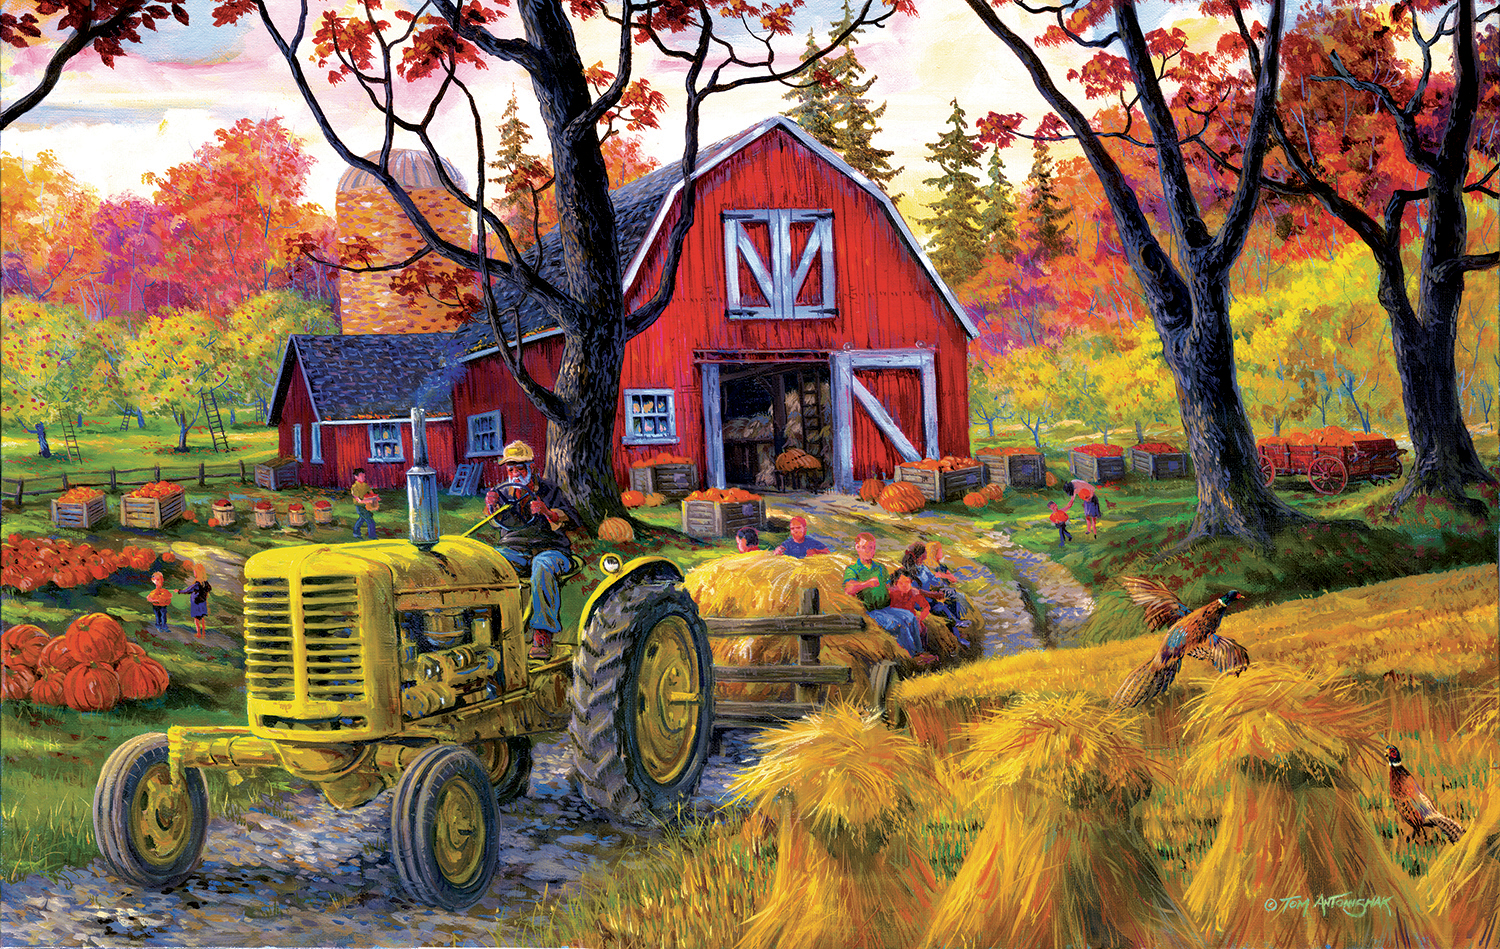 sunsout-joseph-burgess-farm-fall-festival-550-teile-puzzle-sunsout-38884